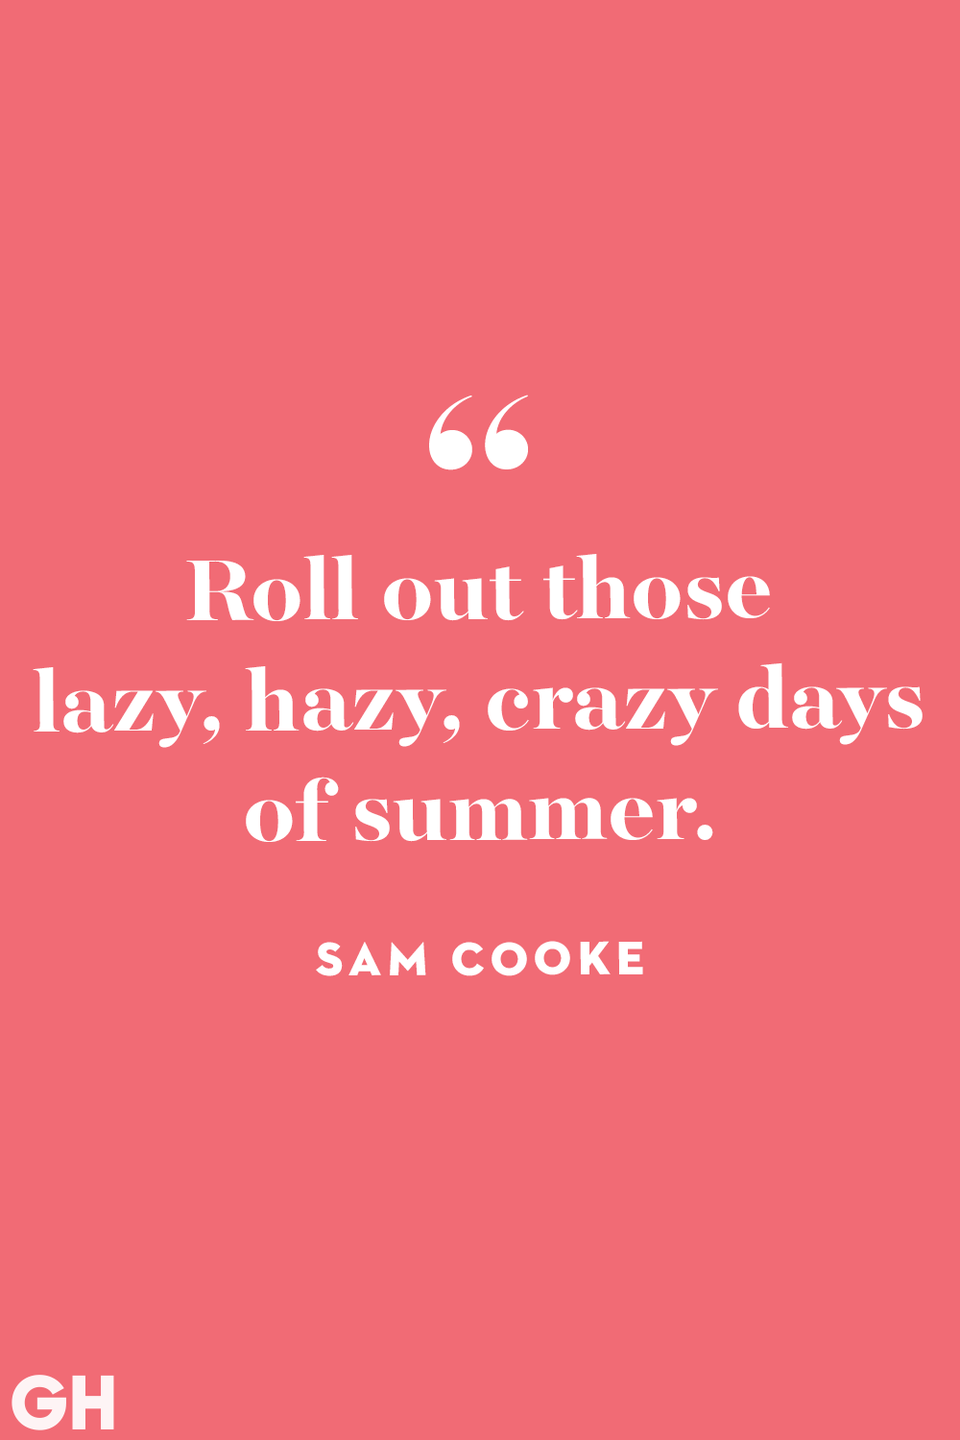 """<p>""""Roll out those lazy, hazy, crazy days of summer.""""</p>"""